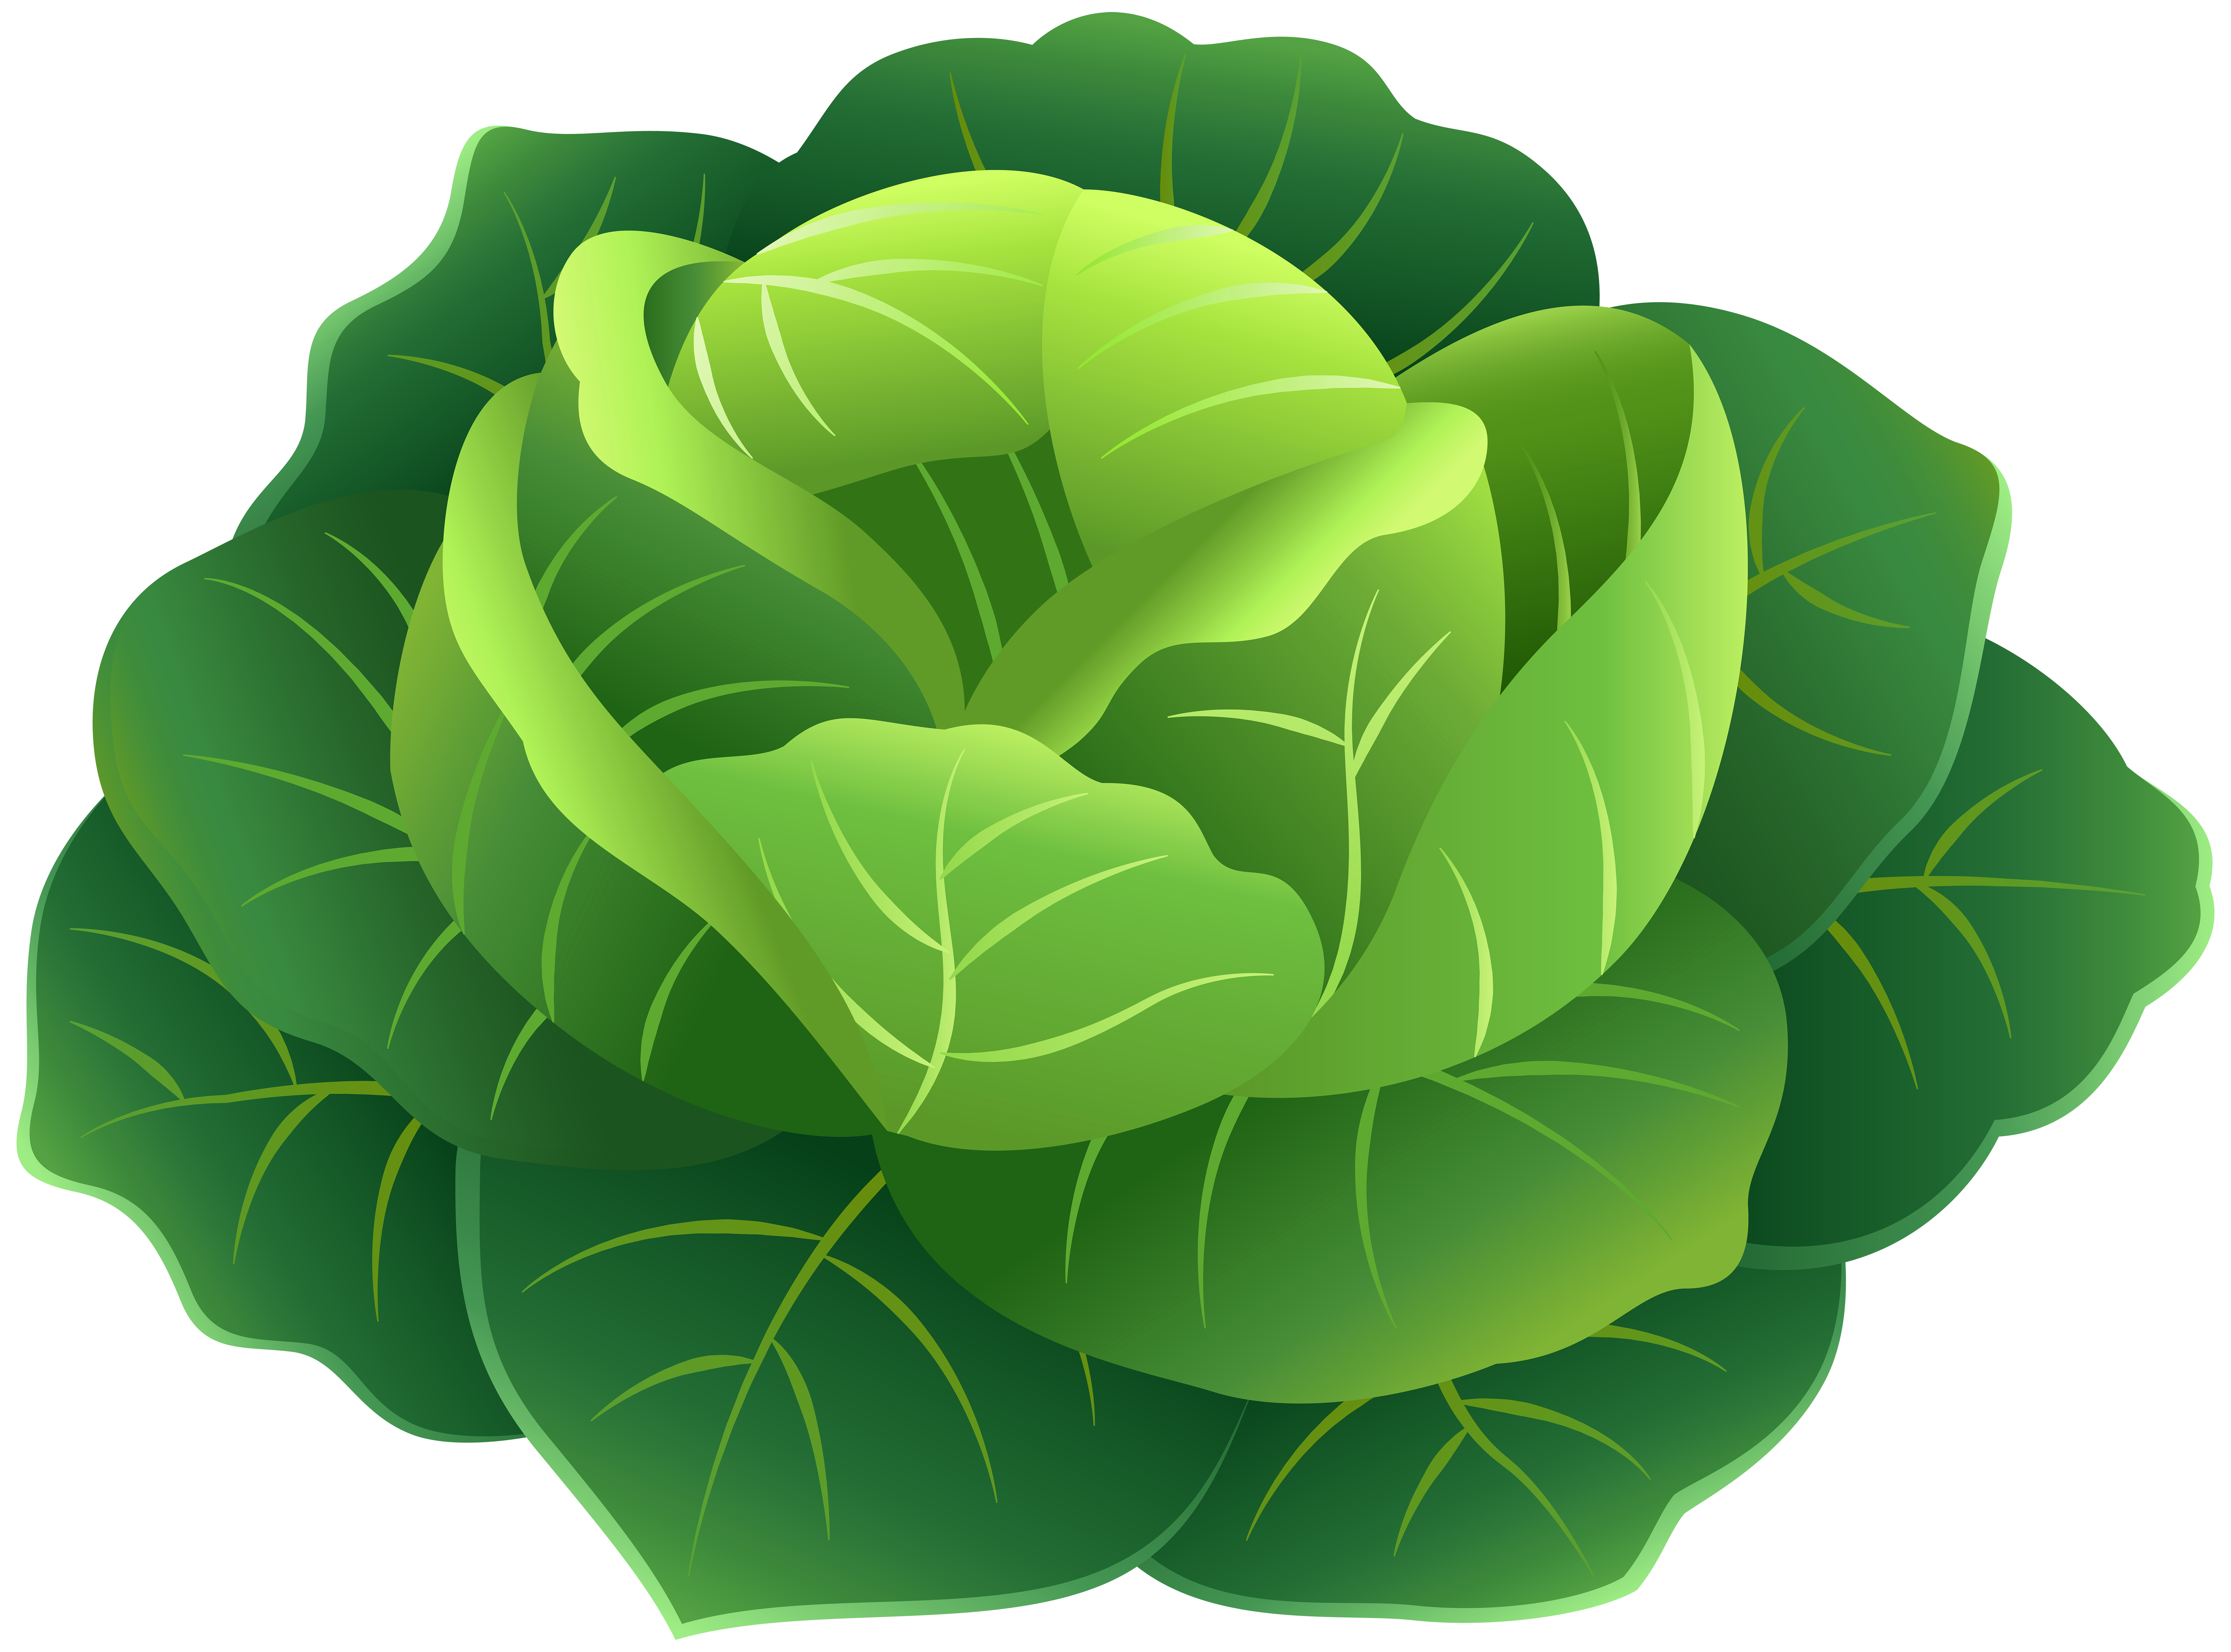 Png clip art image. Cabbage clipart